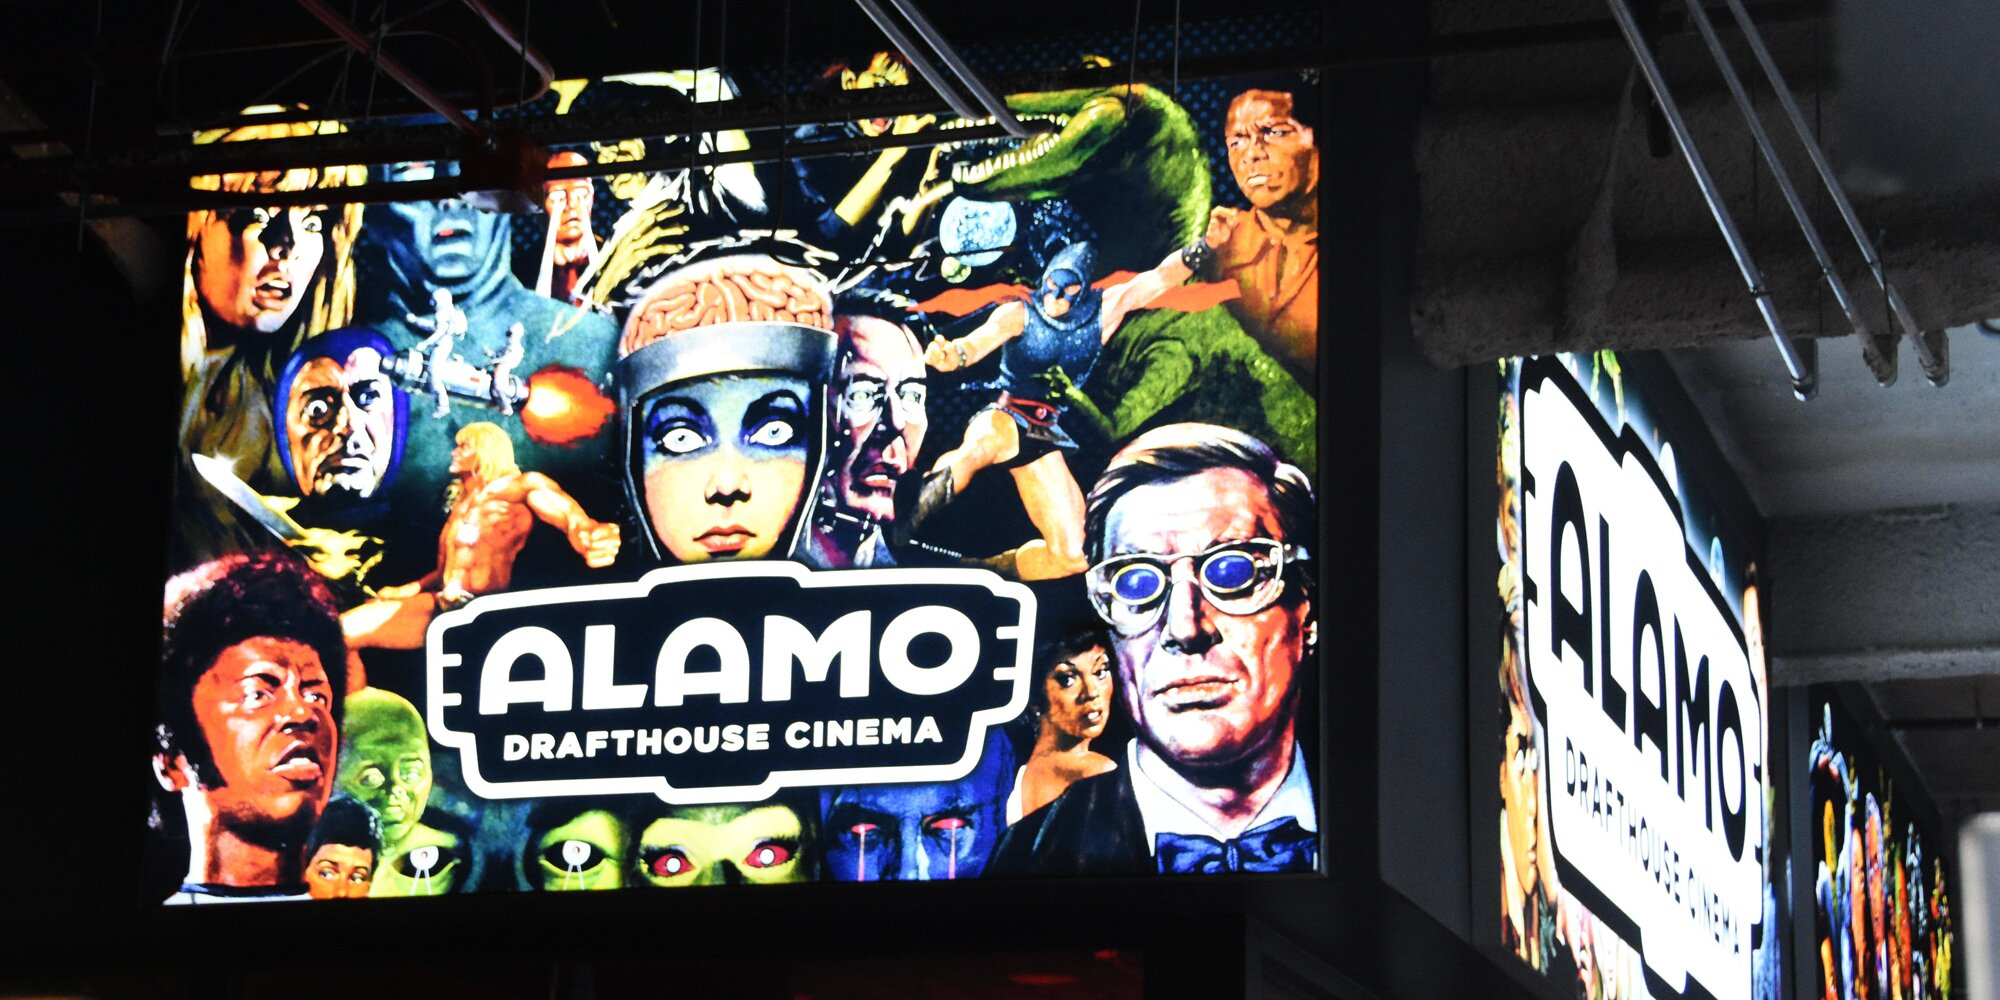 Alamo Drafthouse Movie Theater Chain Files for Bankruptcy